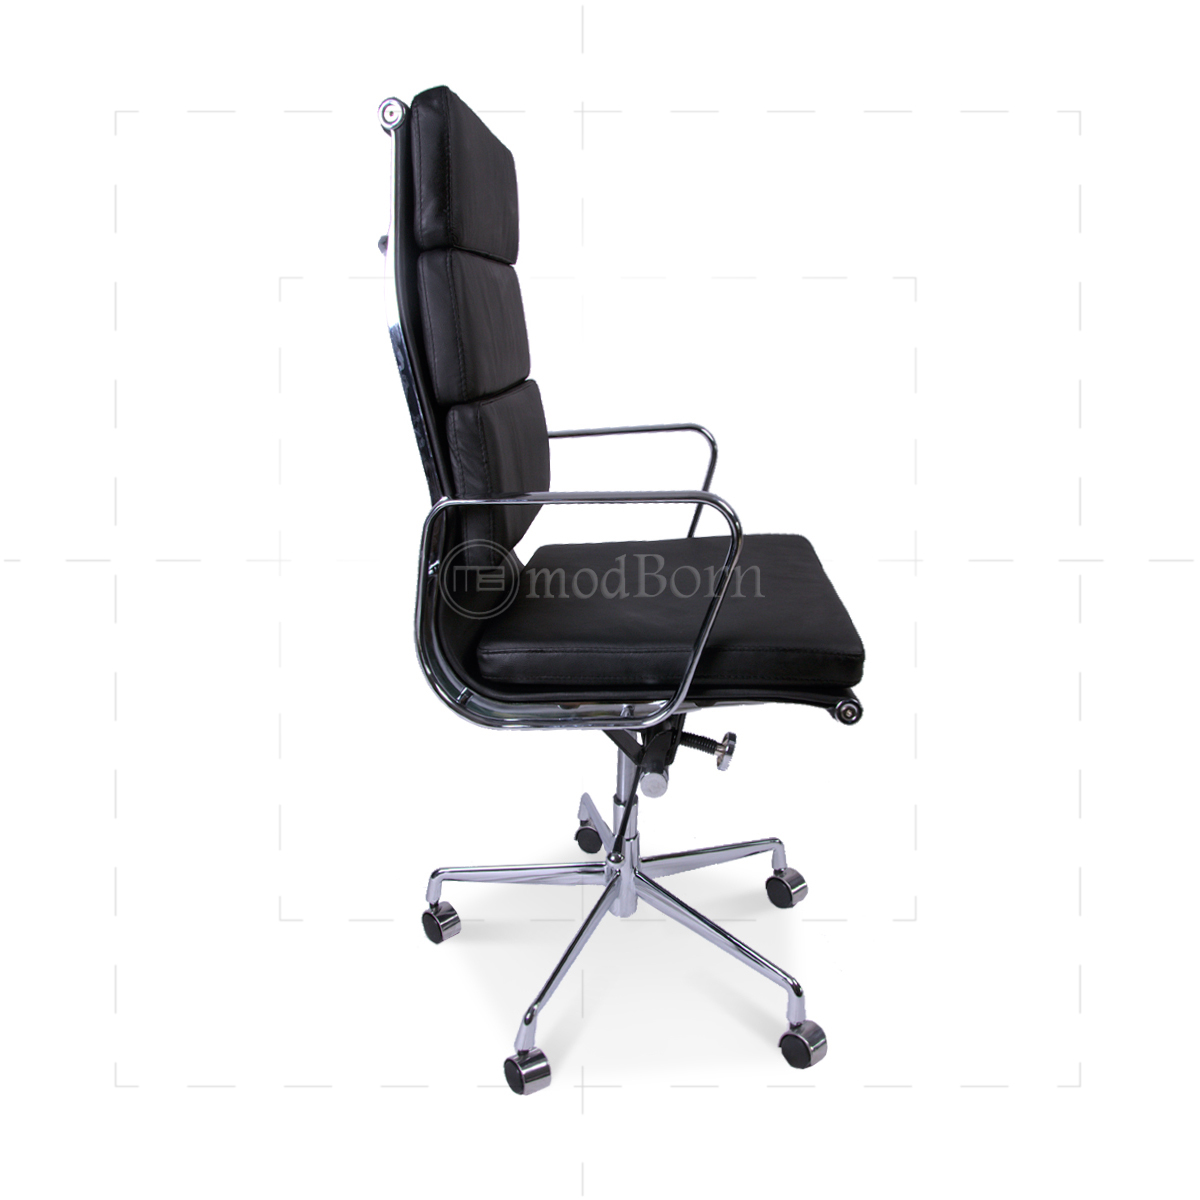 ea219 eames style office chair high back soft pad black leather bedroomsweet eames office chair replicas style